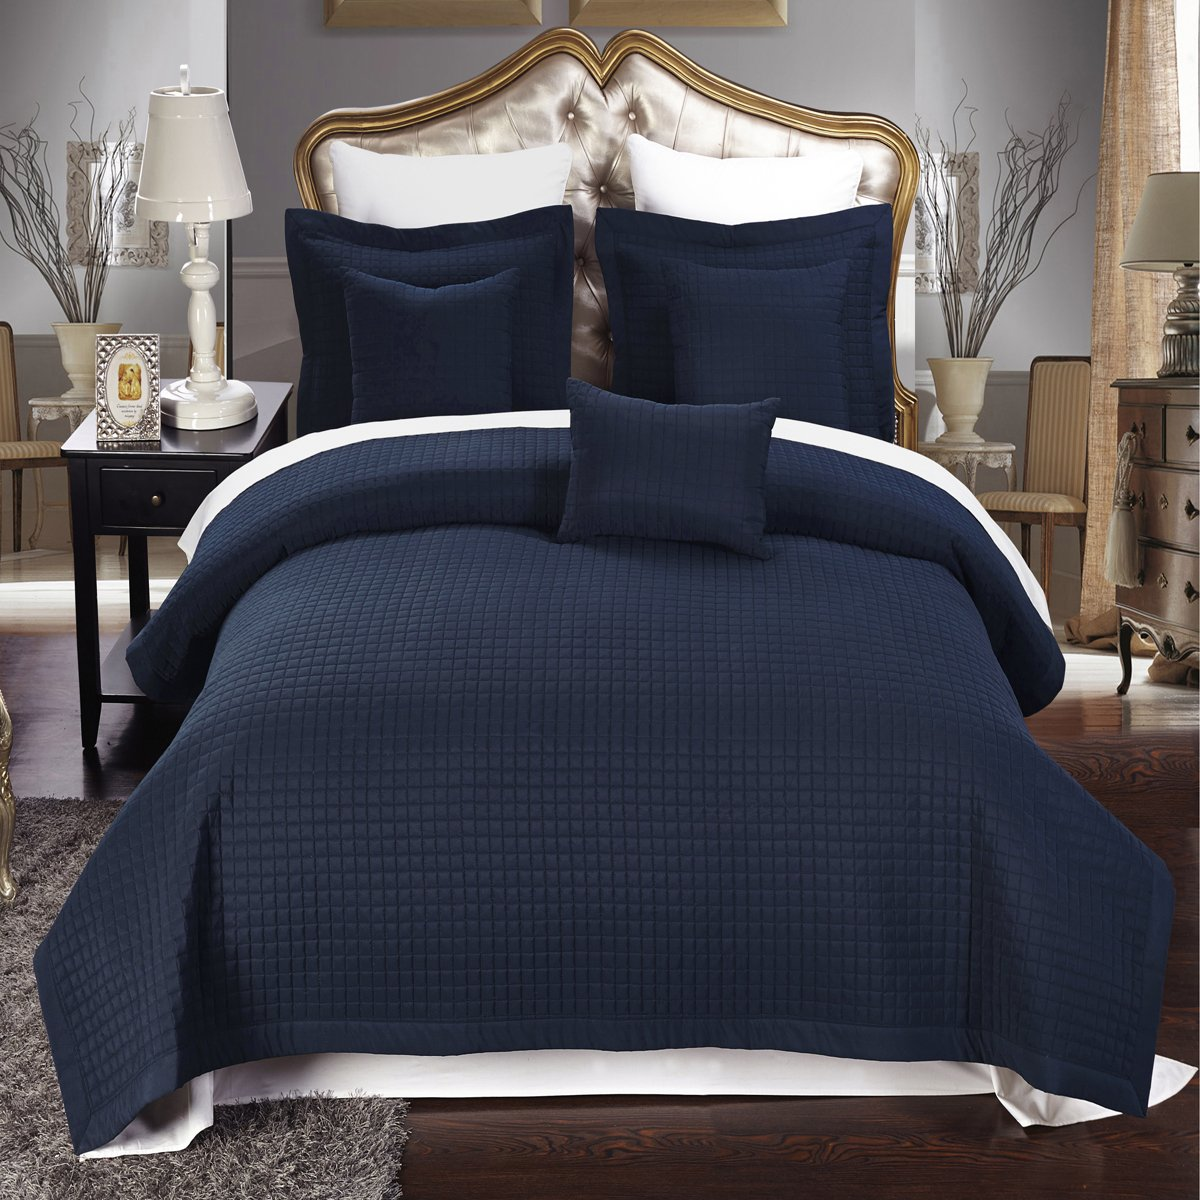 Royal Blue And Navy Bedding Sets Ease Bedding With Style